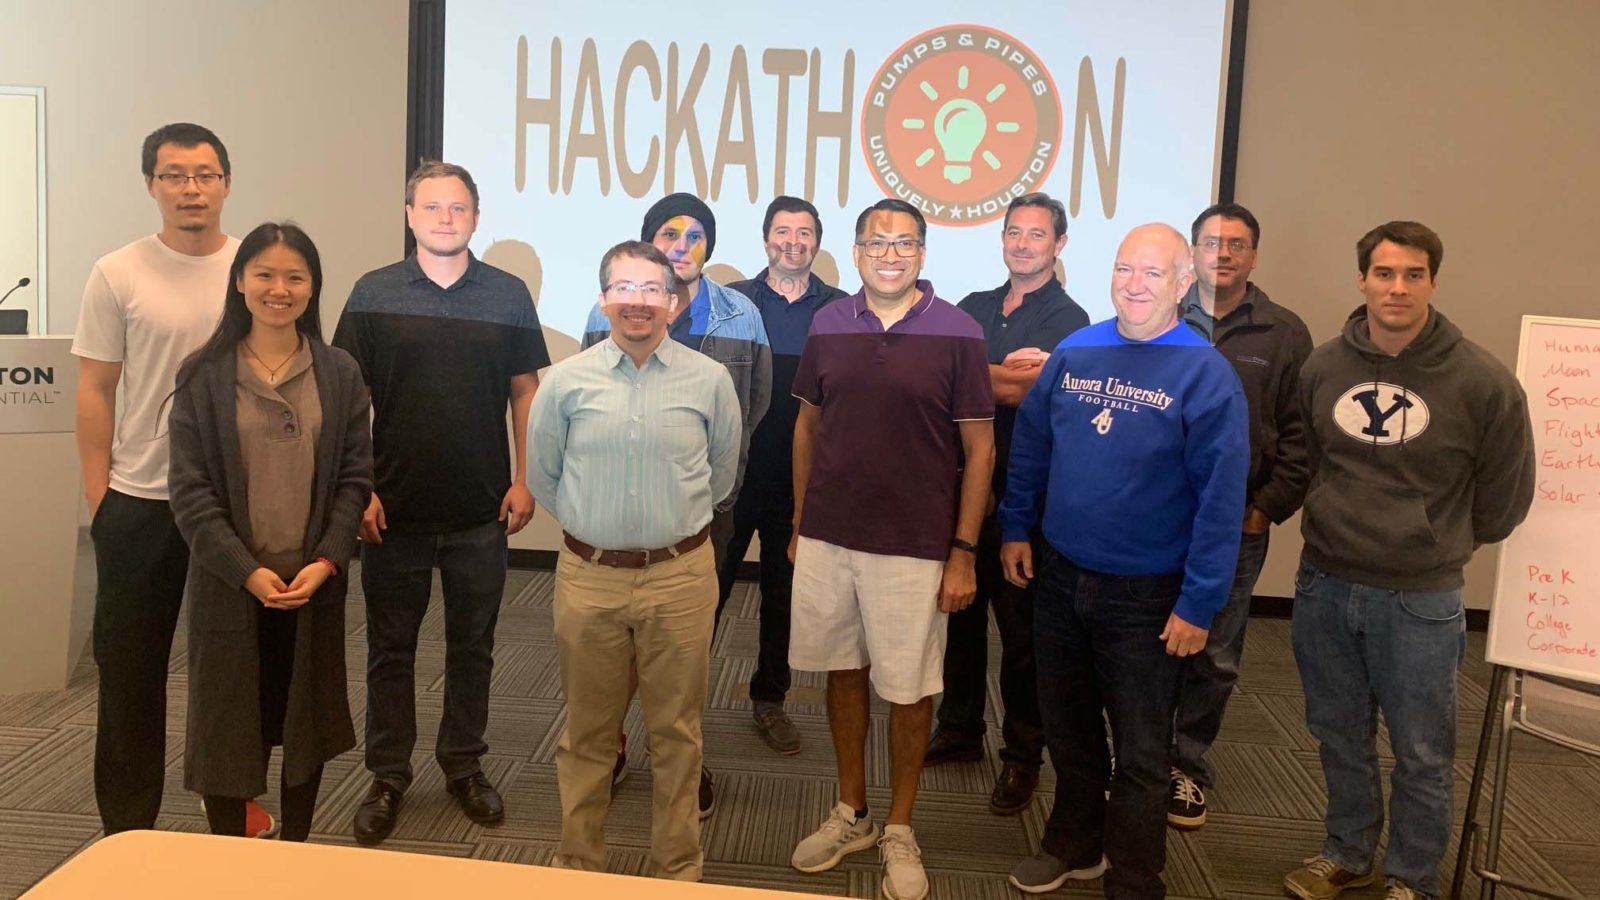 Hackathon participants at Houston Exponential